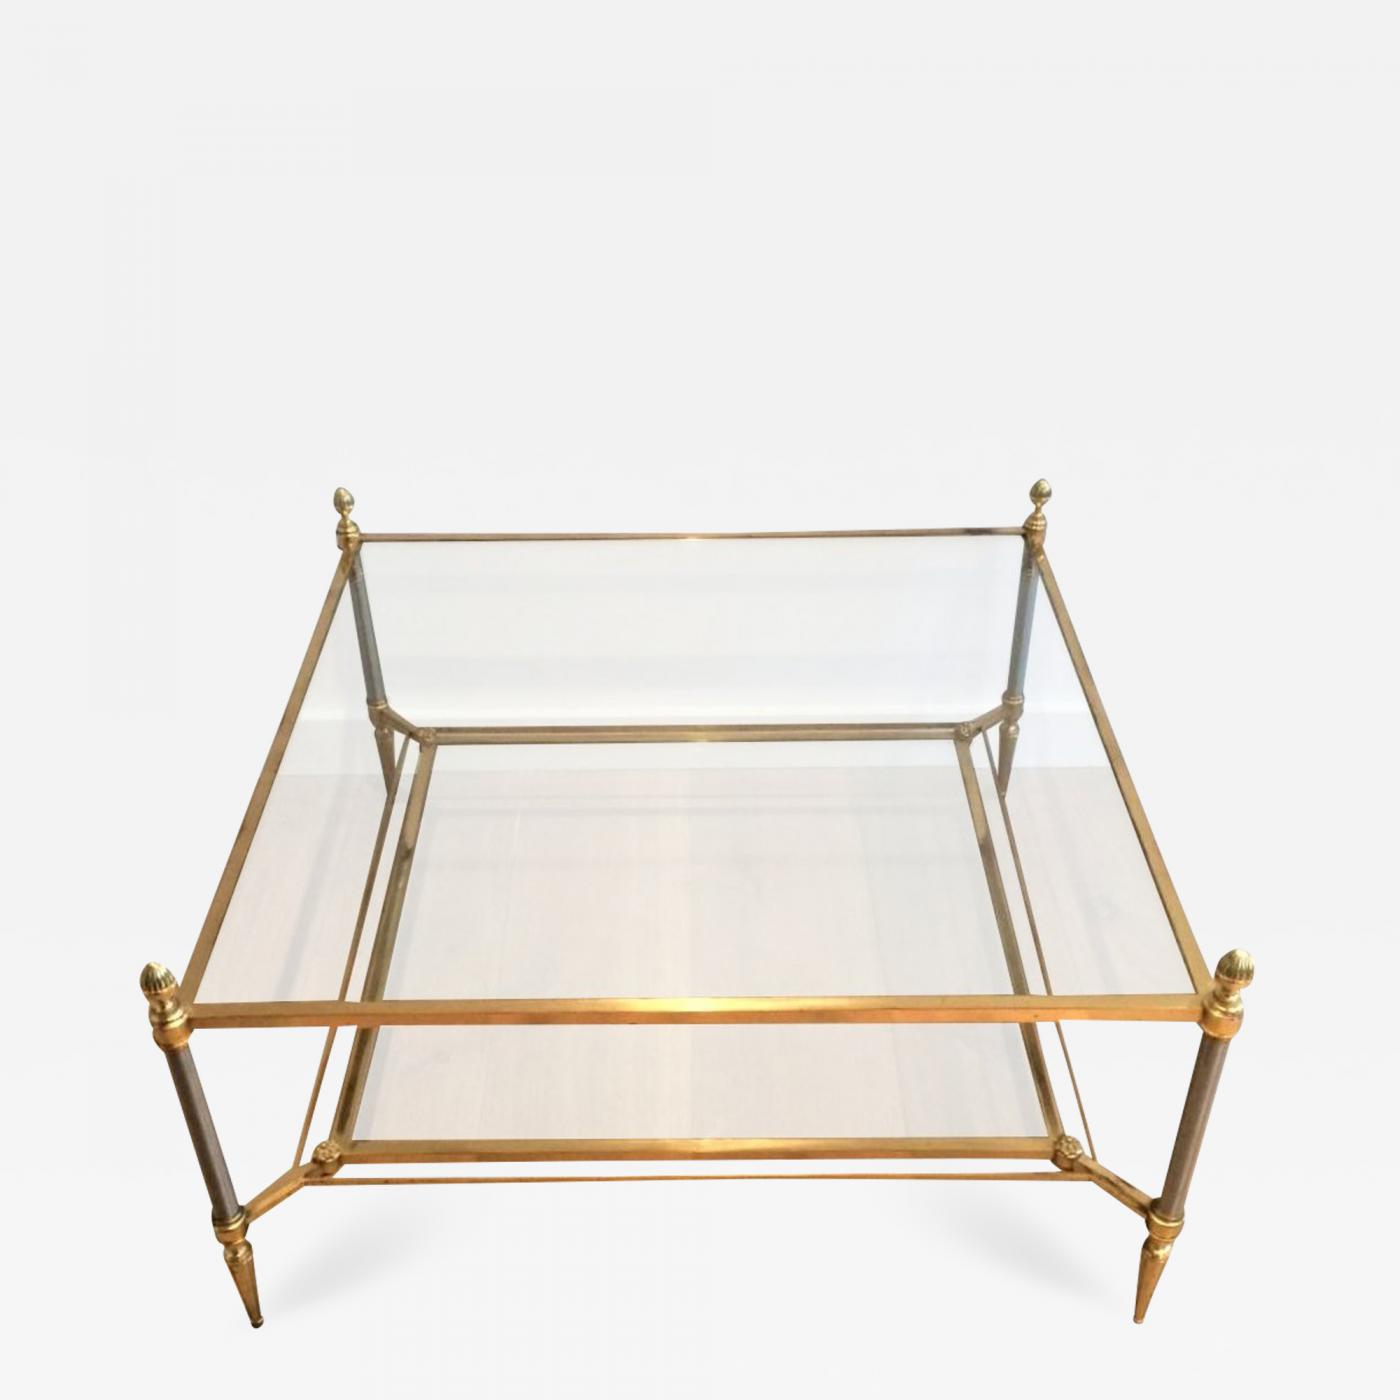 Picture of: Maison Jansen Mid Century Maison Jansen Brass Coffee Table With 2 Tiers Glass Shelves